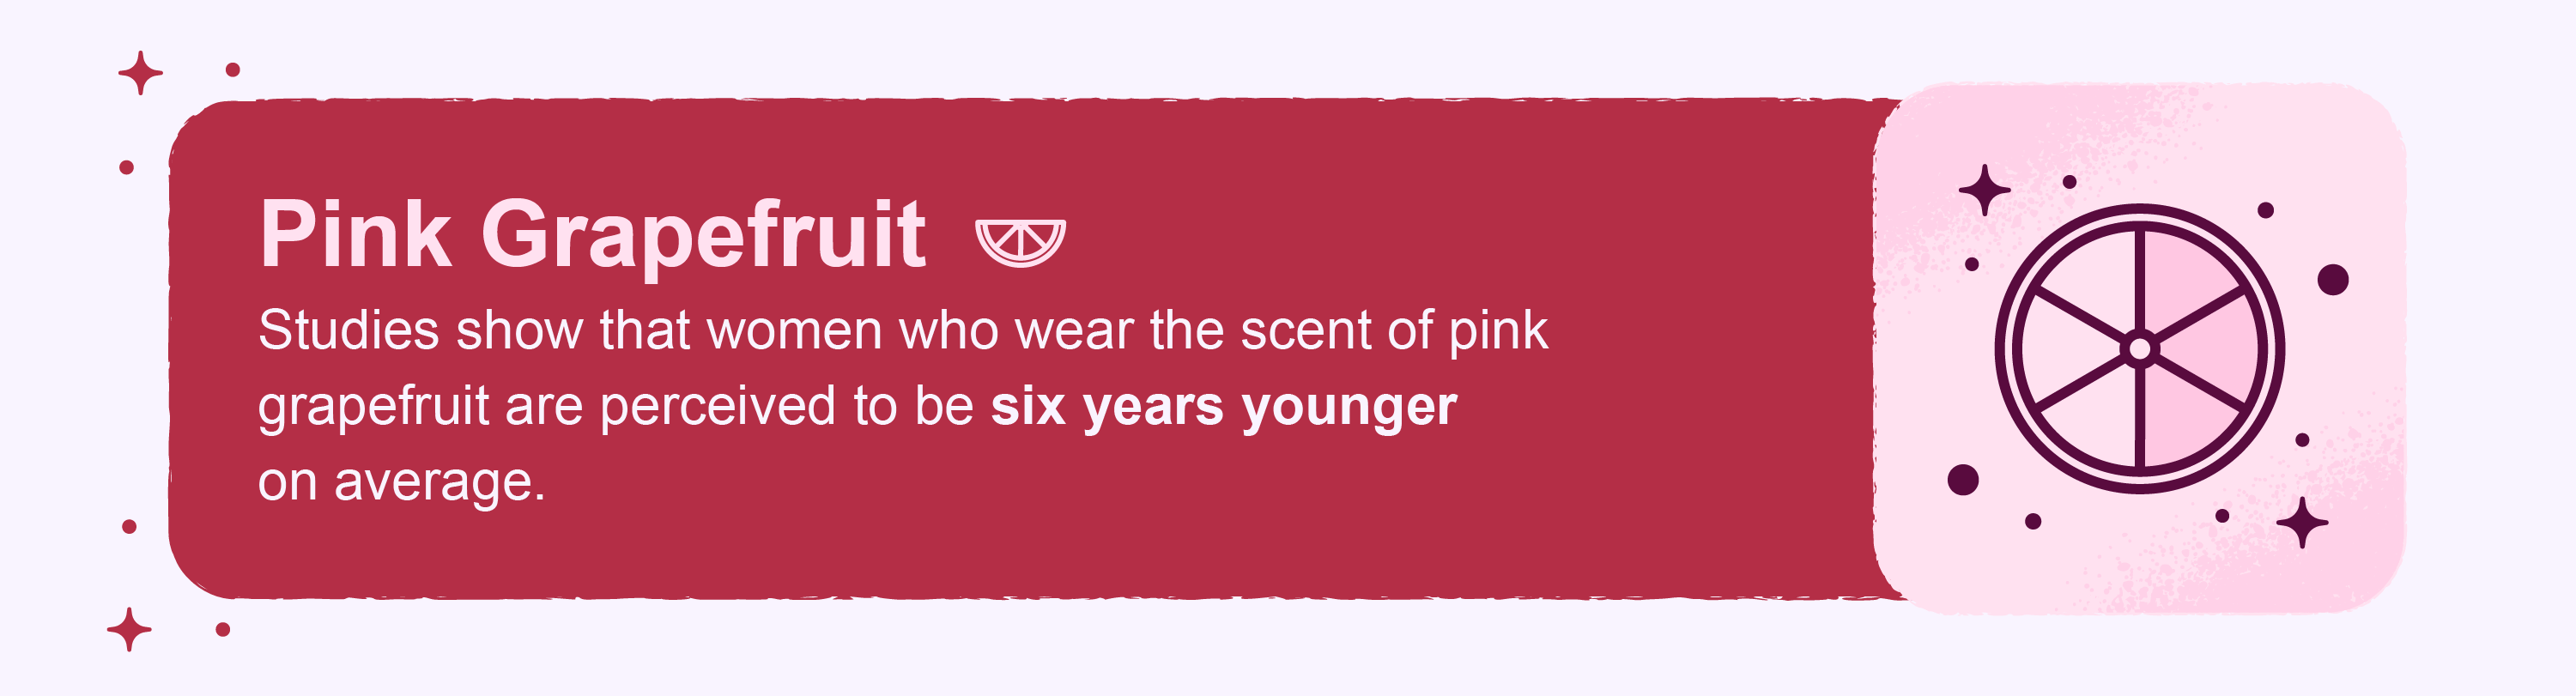 pink grapefruit scent fact